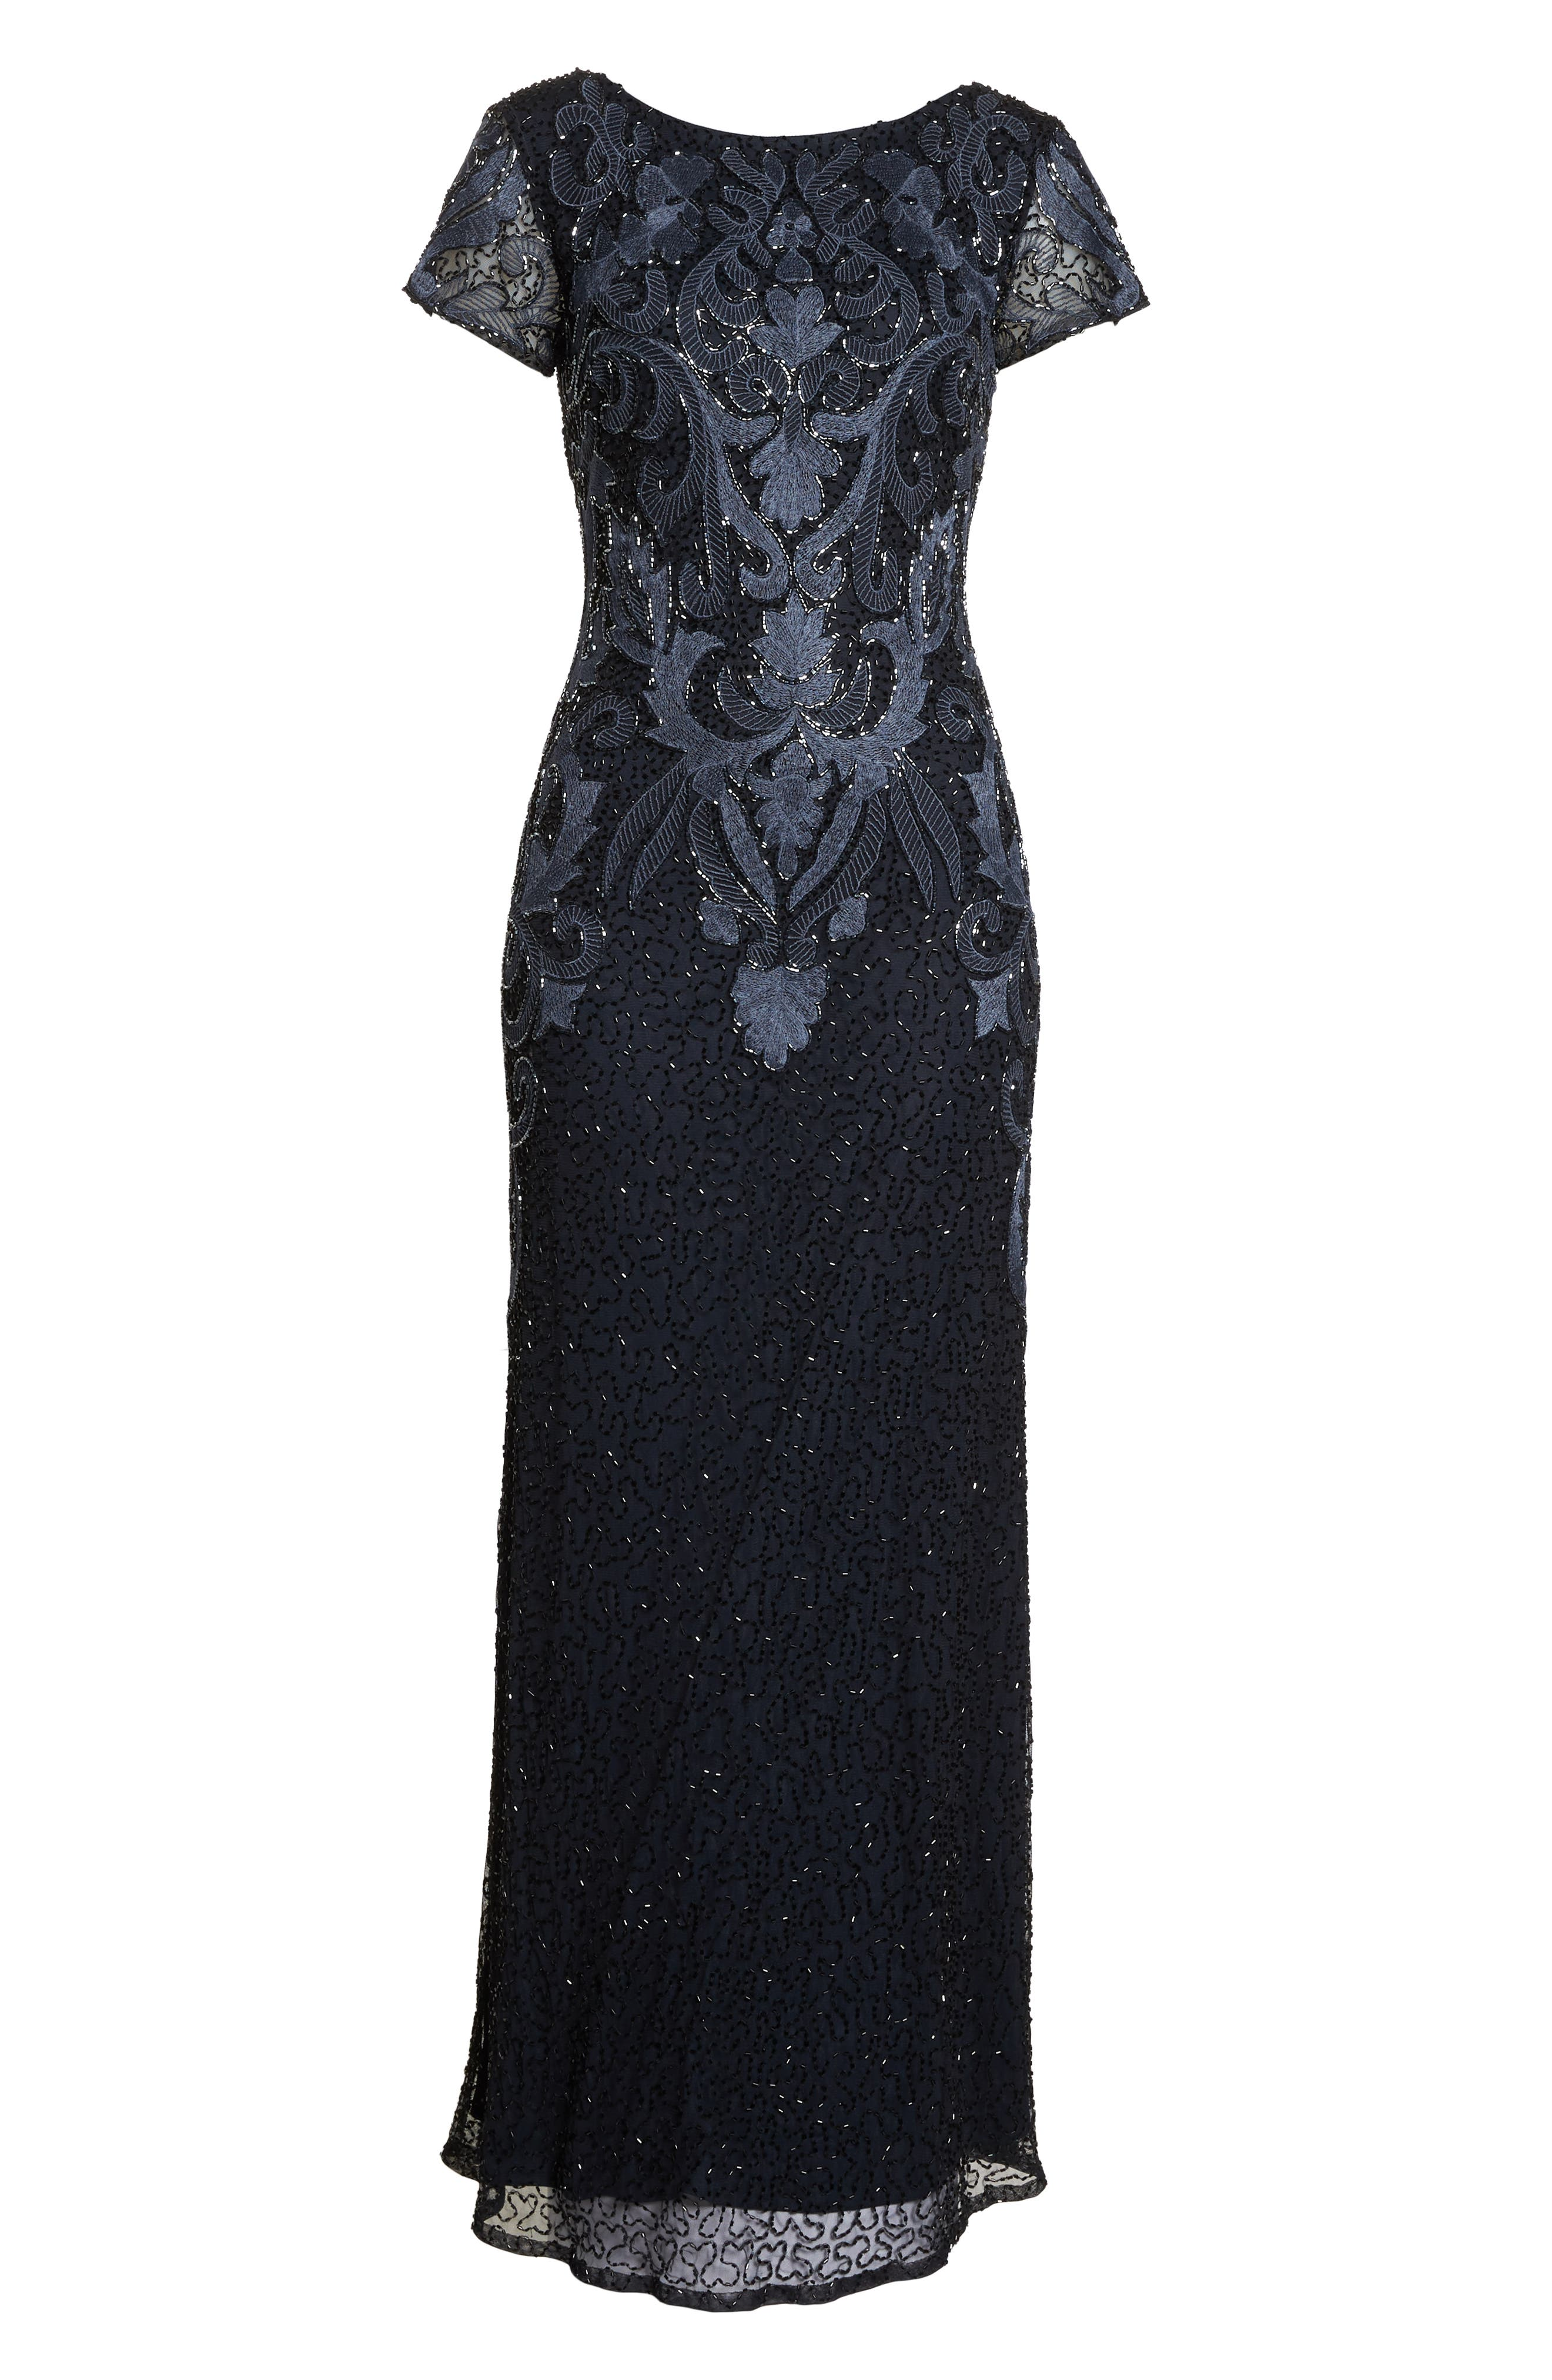 PISARRO NIGHTS,                             Embroidered Mesh Gown,                             Alternate thumbnail 8, color,                             001